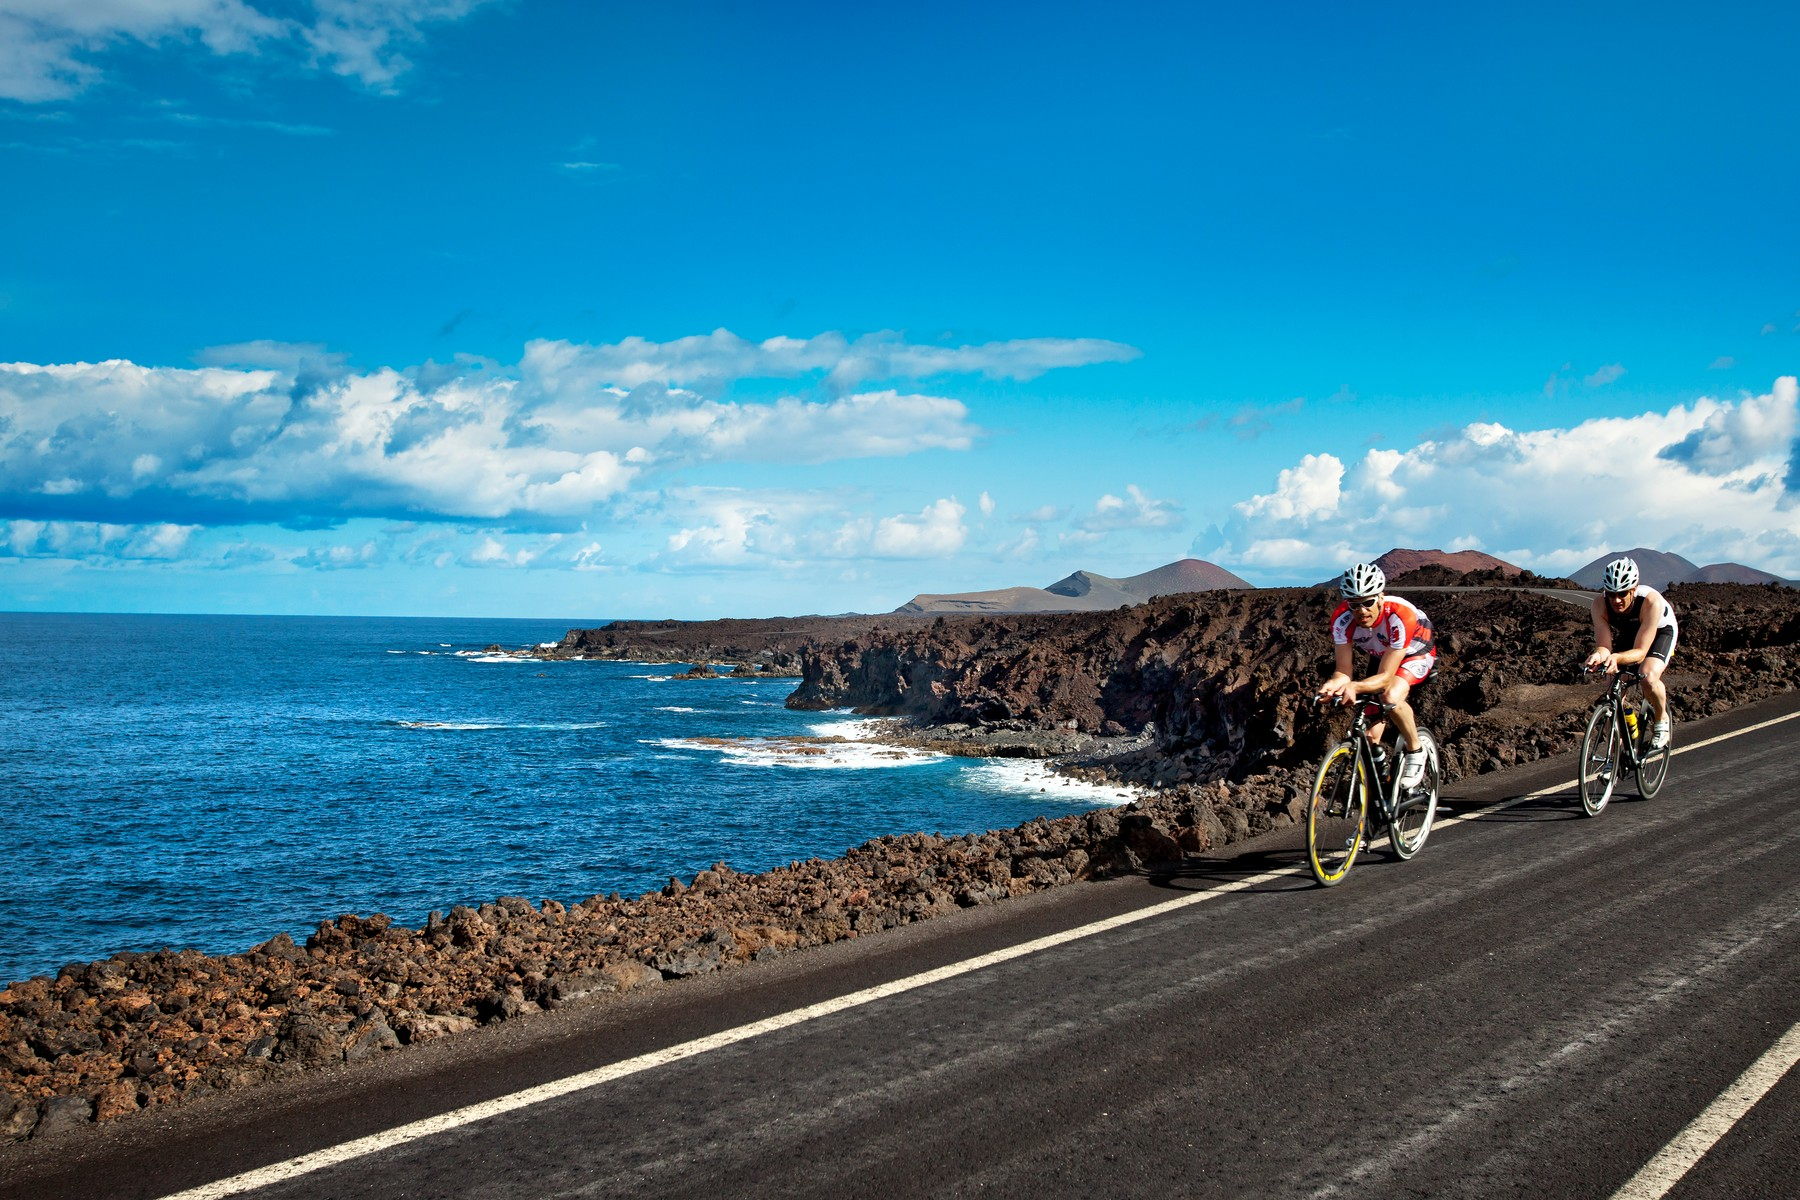 Cyclists at cliff coast, Los Hervideros, Lanzarote, Canary Islands, Spain, Europe, Image: 151243631, License: Rights-managed, Restrictions: , Model Release: no, Credit line: Profimedia, LOOK-foto